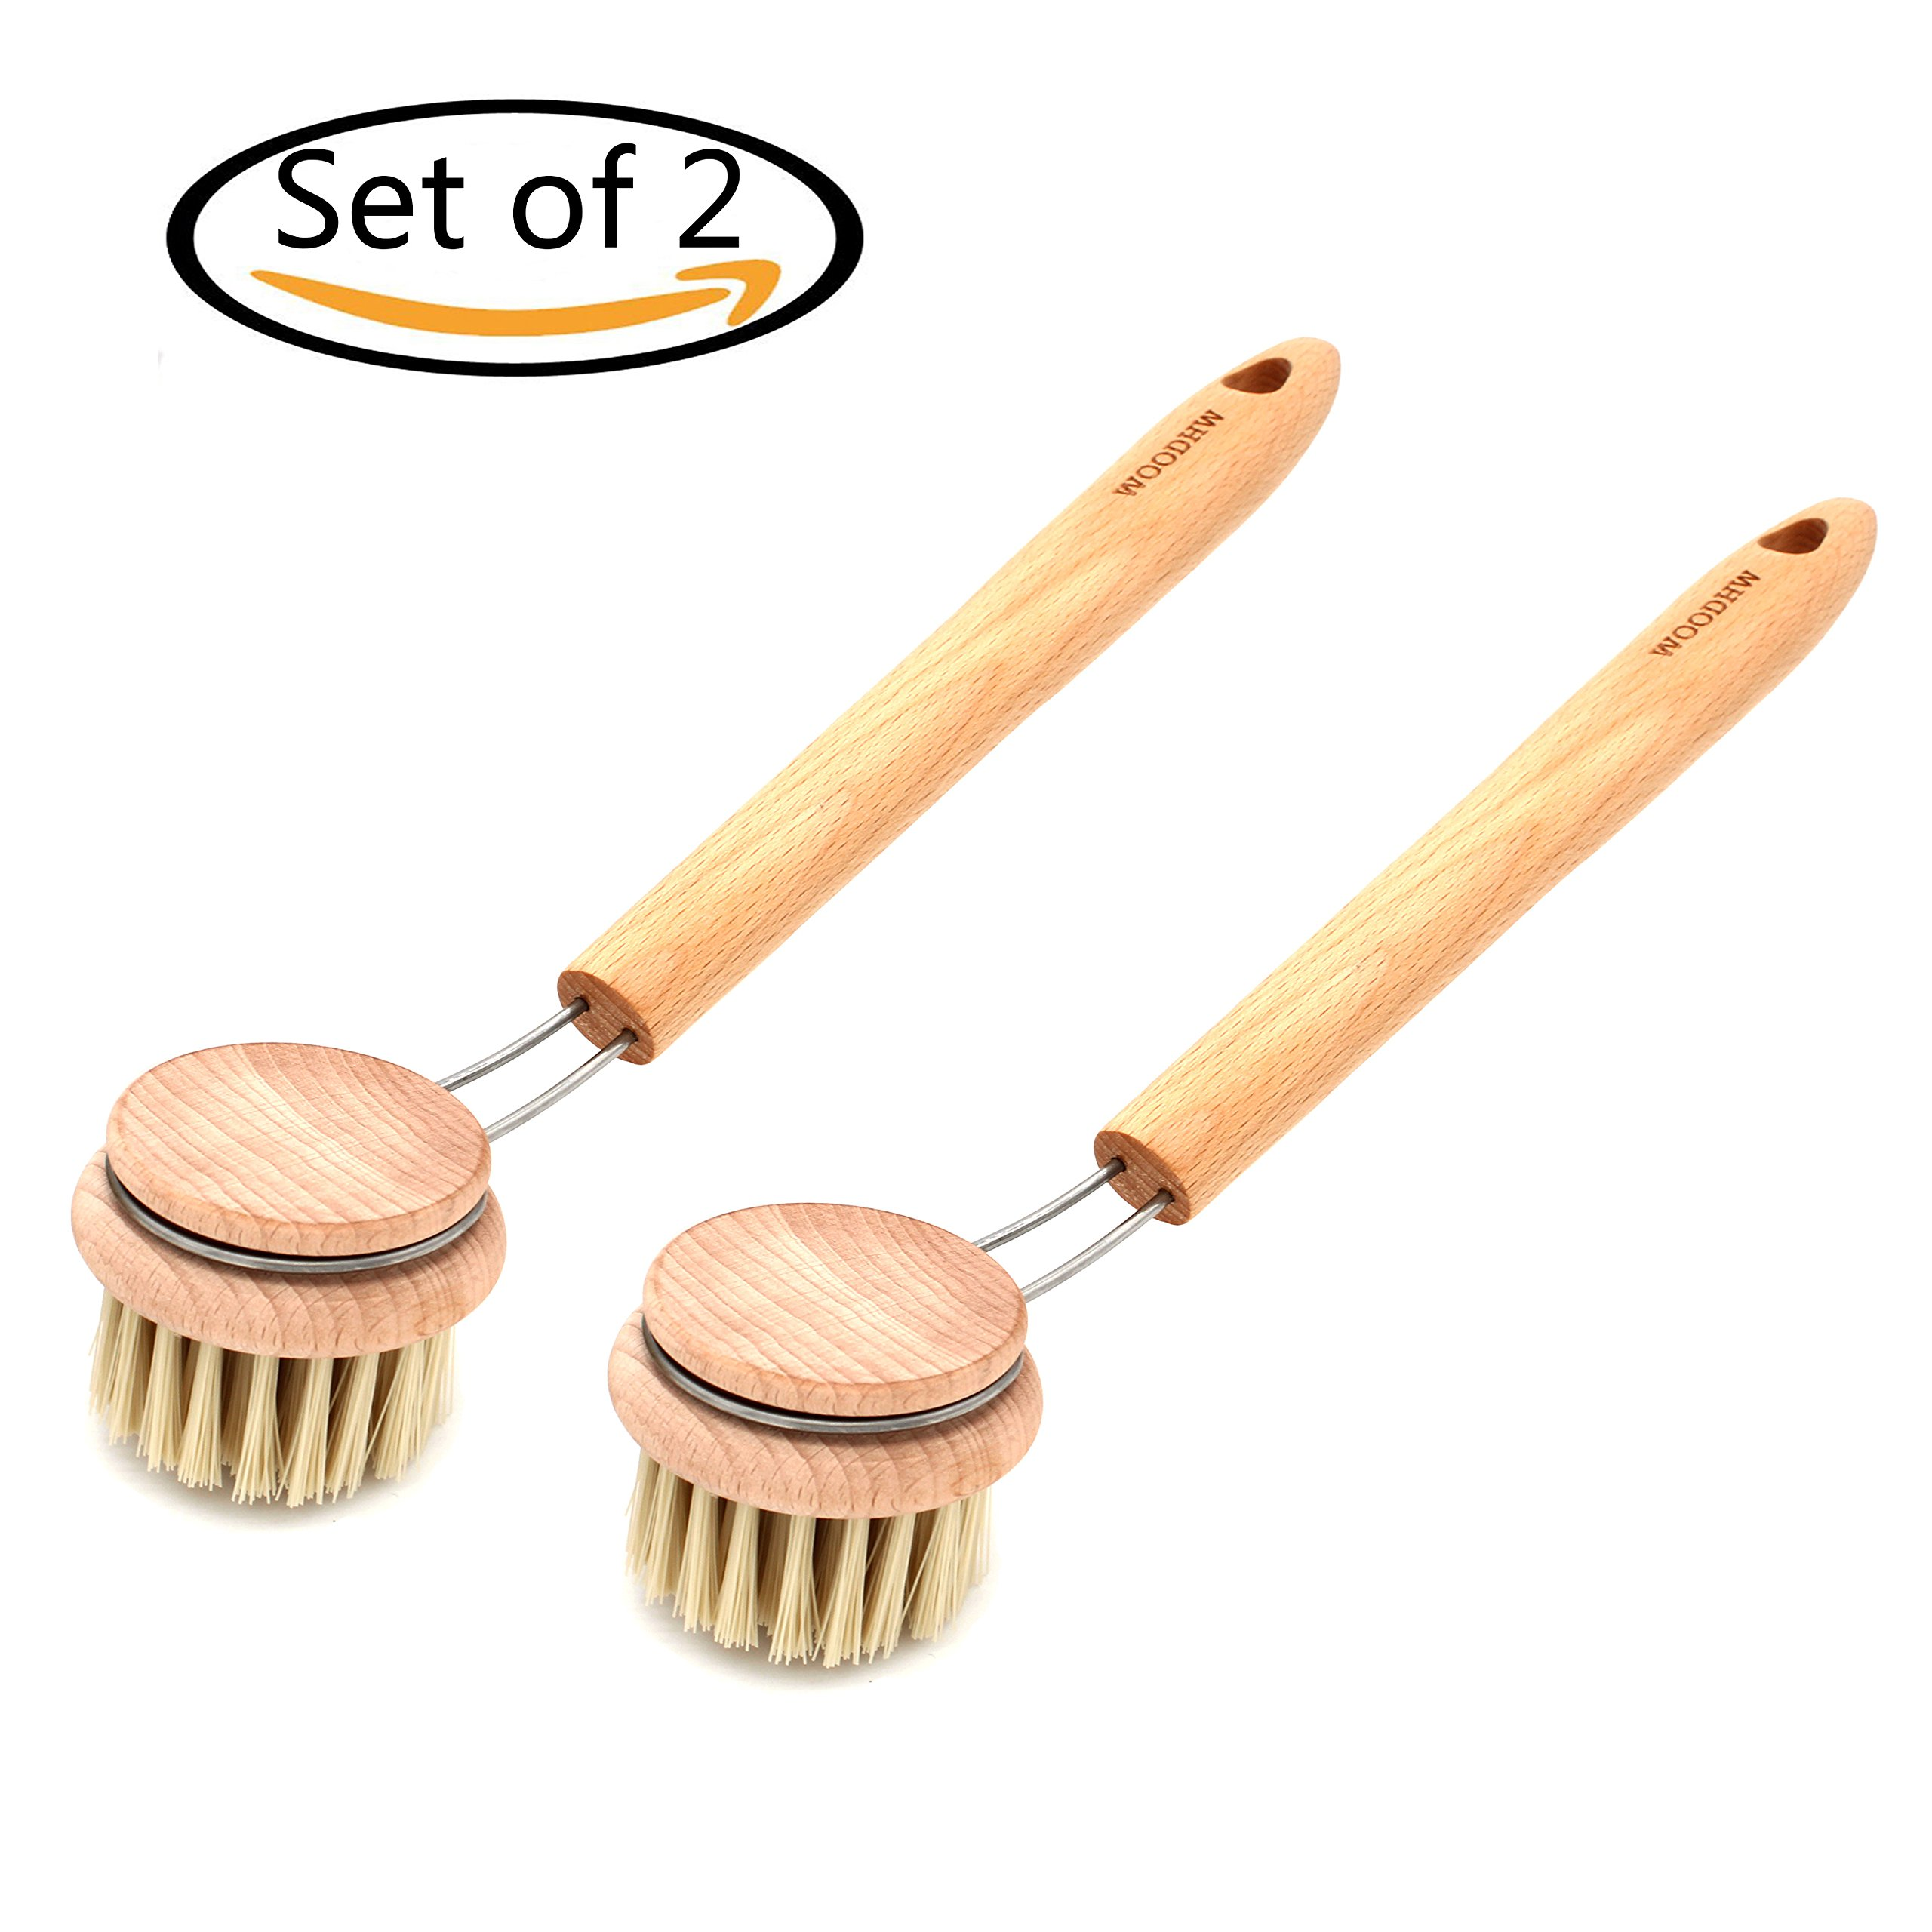 Tueascallk Beech Wood Pan Brush, Household Cleaning Brushes, Length 12.5'', Set of 2